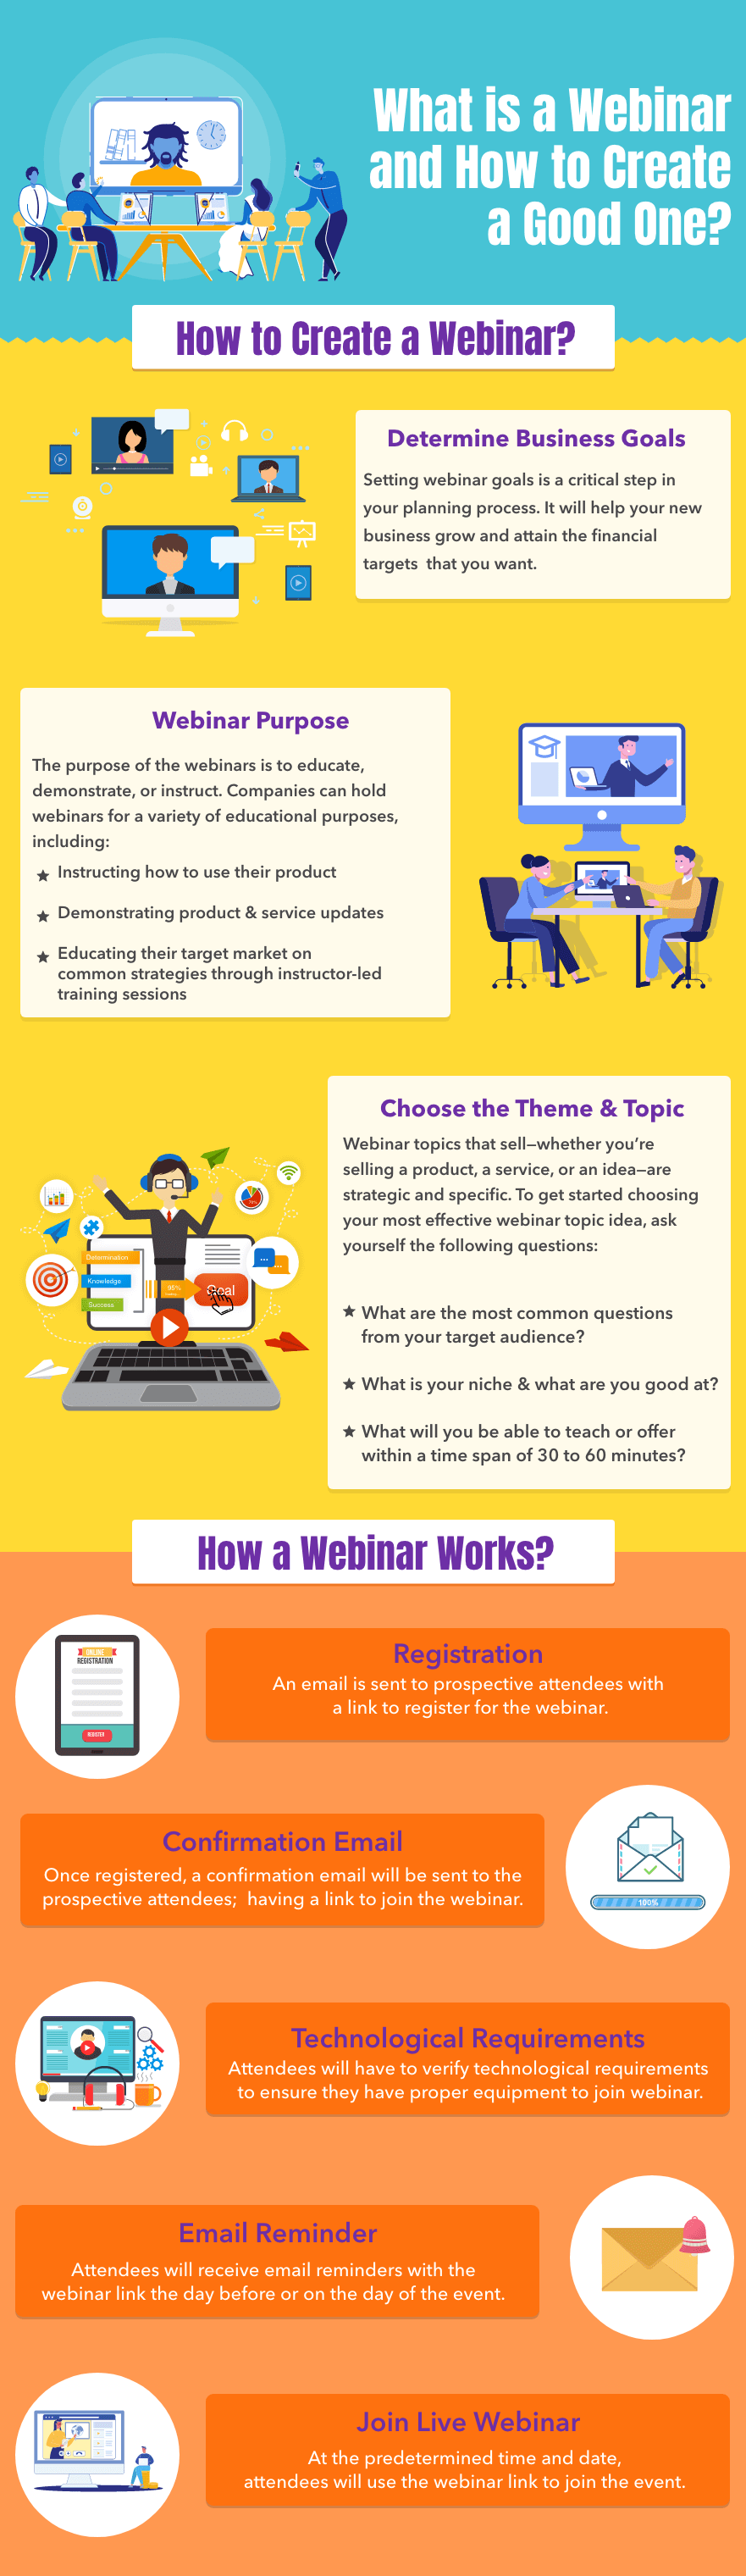 What is a webinar and how to create a good one?